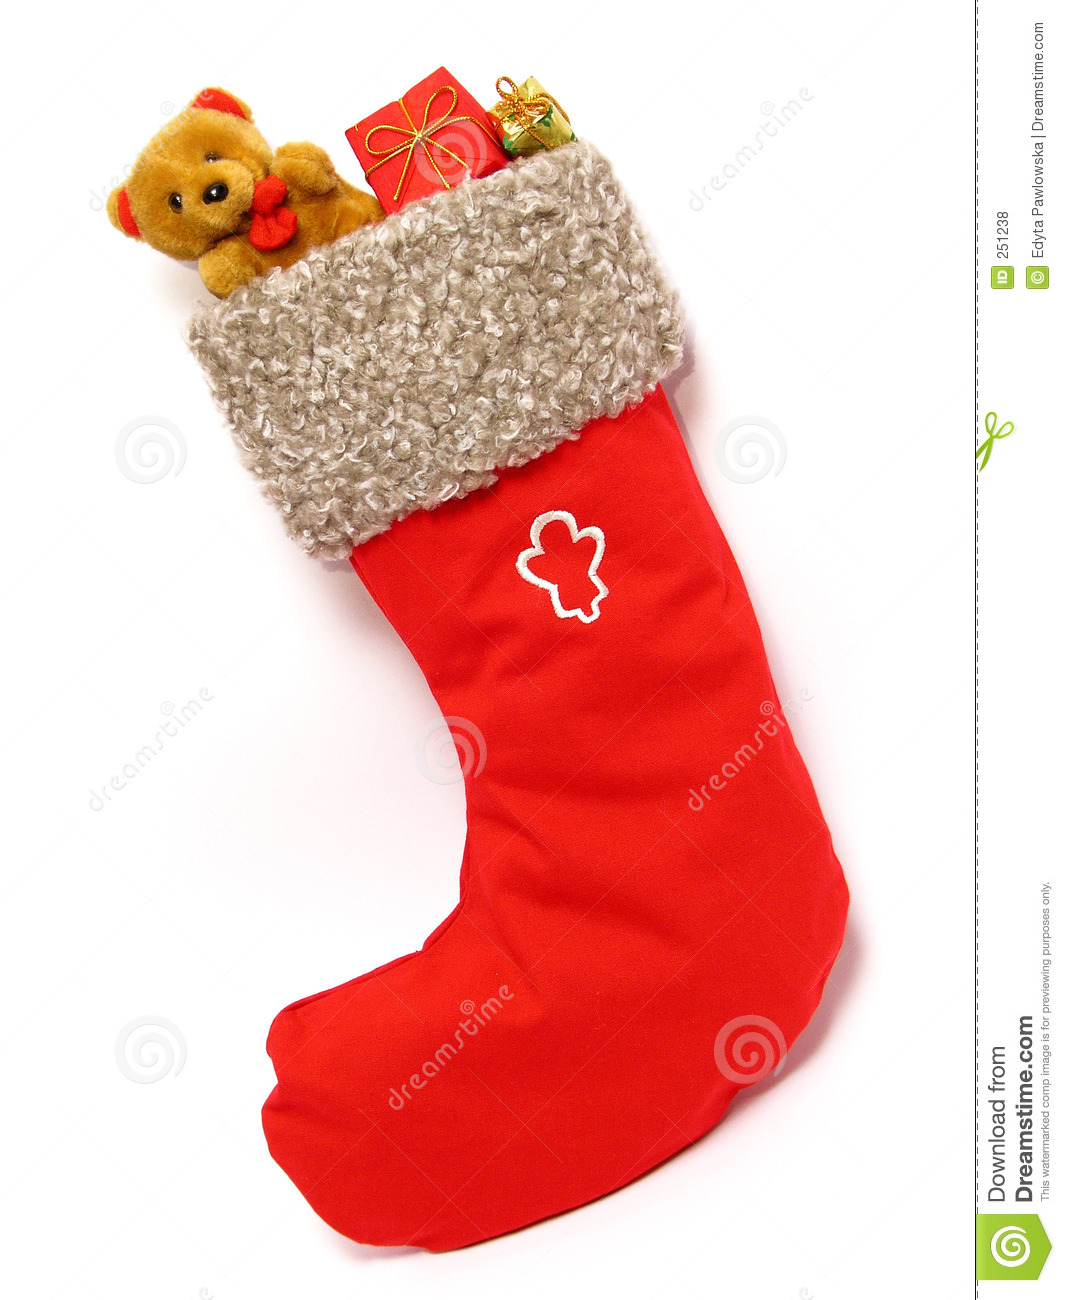 Christmas Stocking full of Presents - isolated.